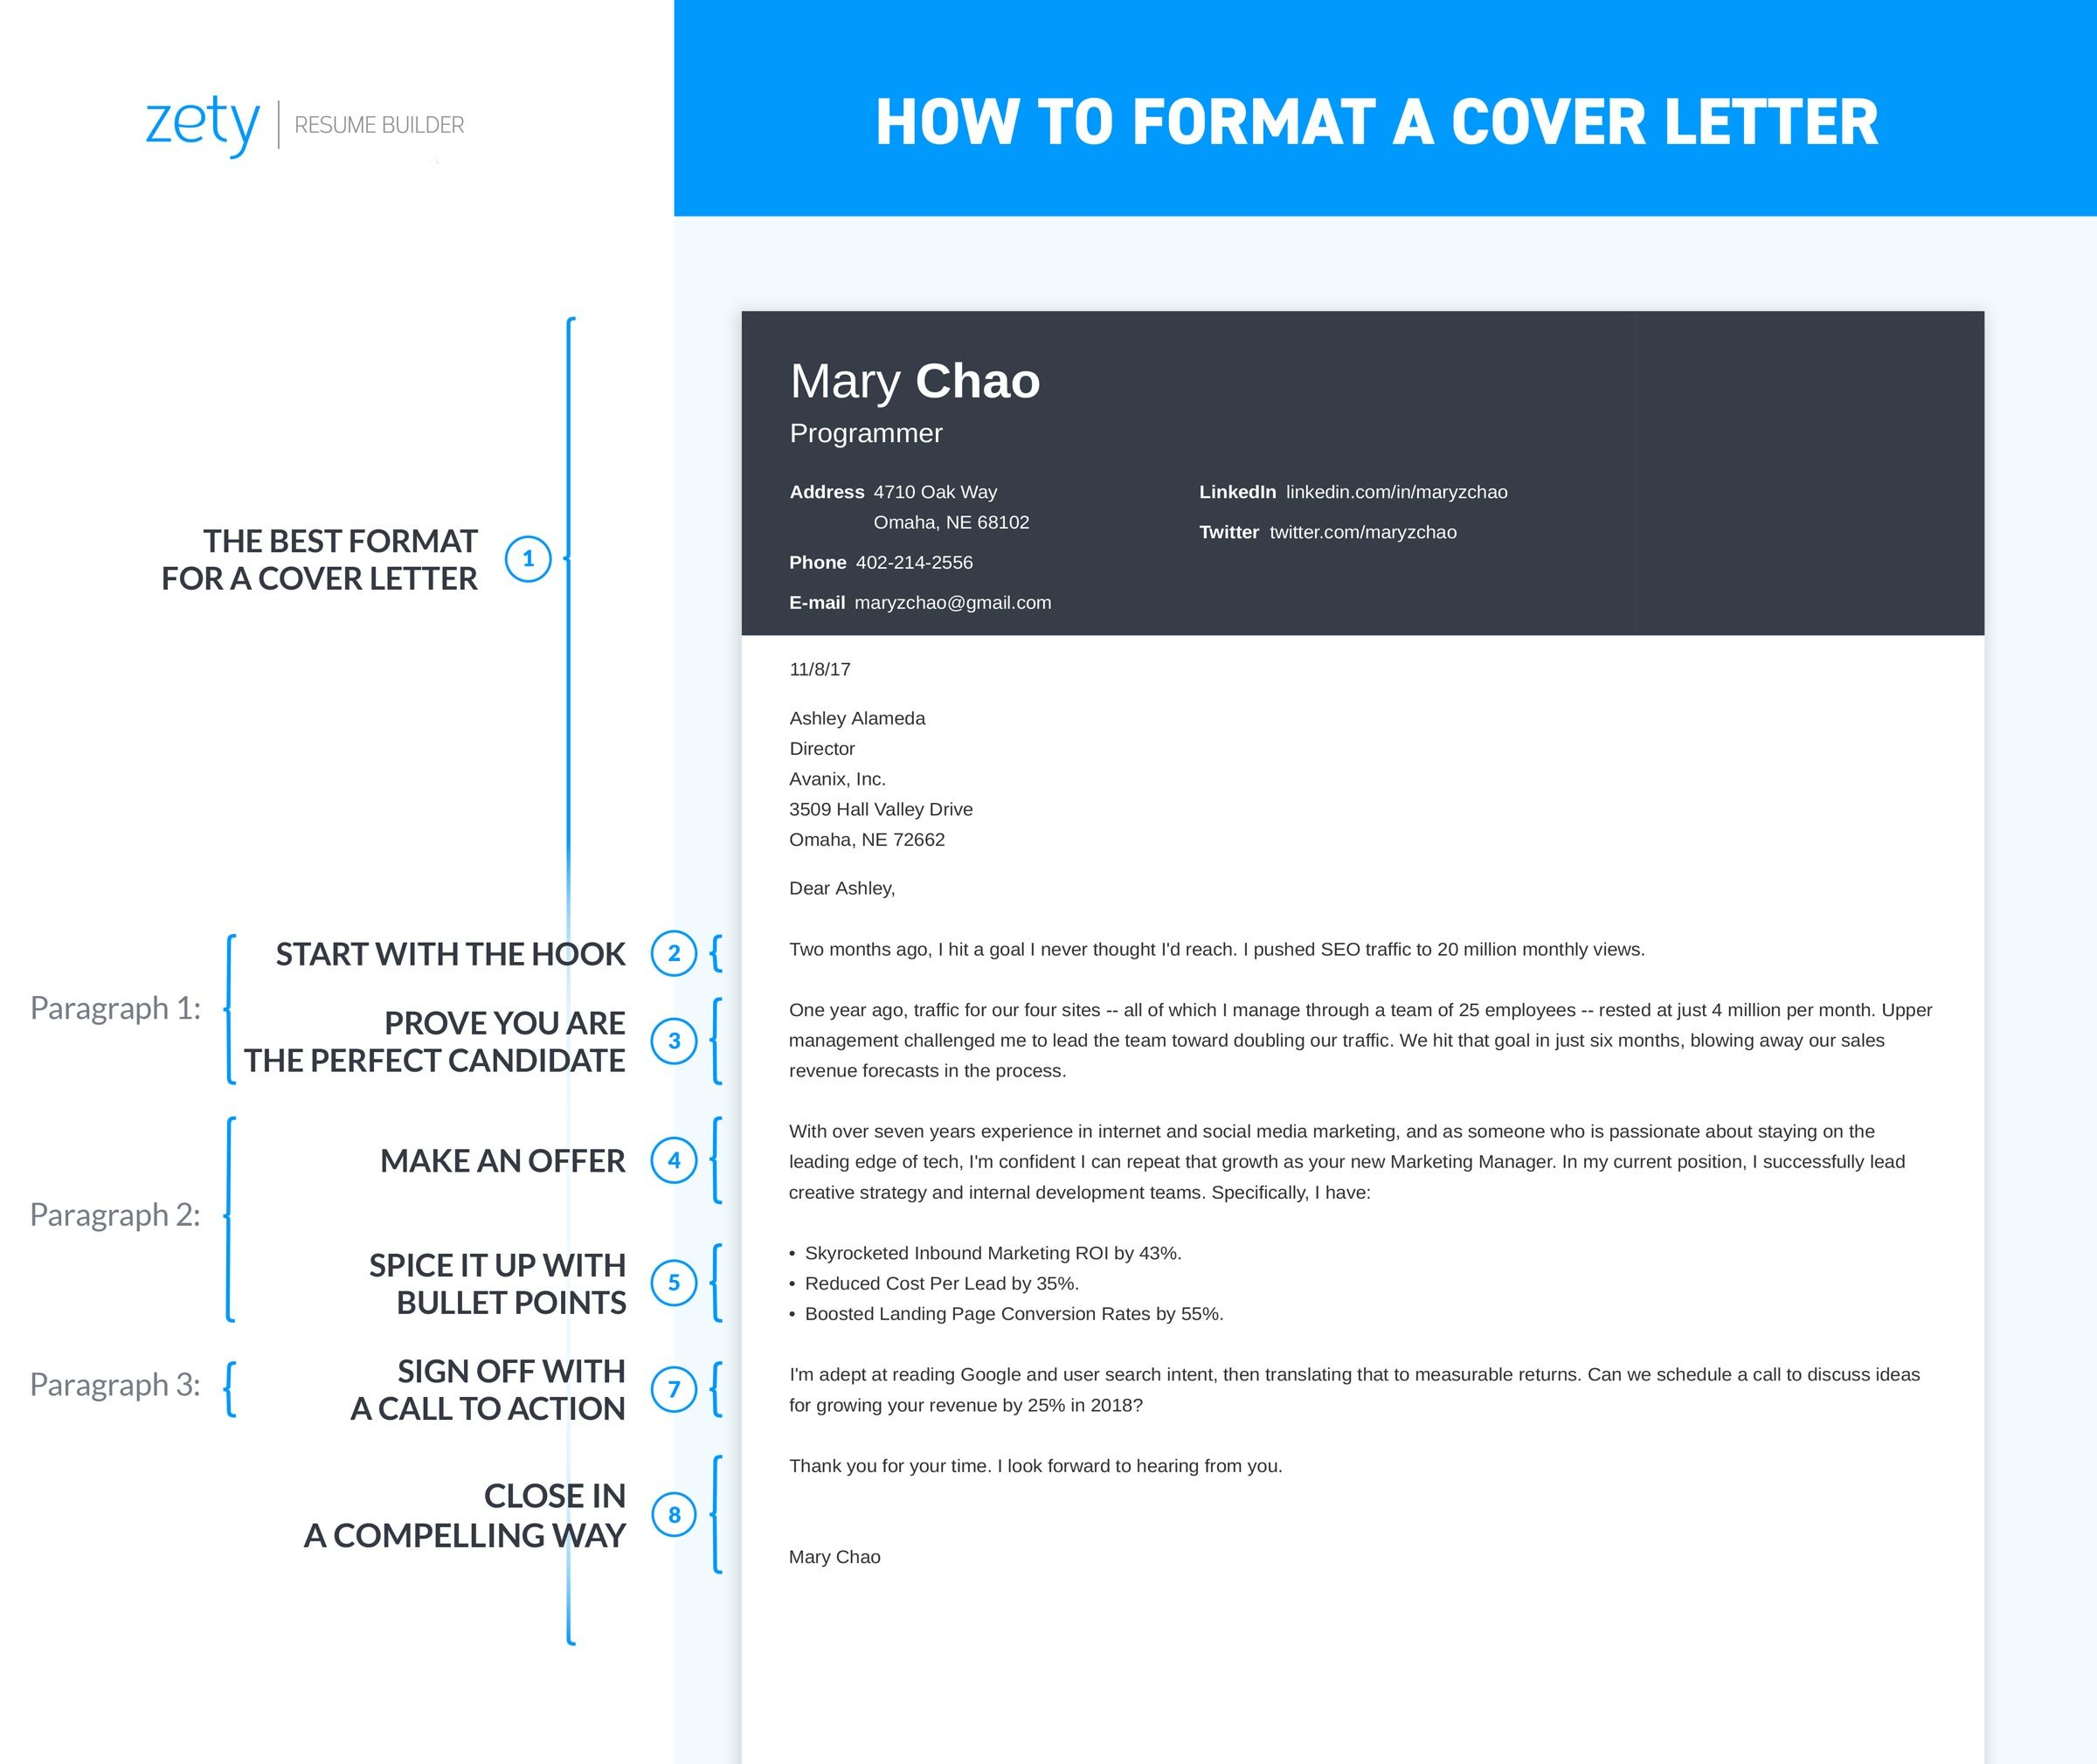 Format For Cover Letter Cover Letter Format Templates Ready To Use Layouts 20 Samples